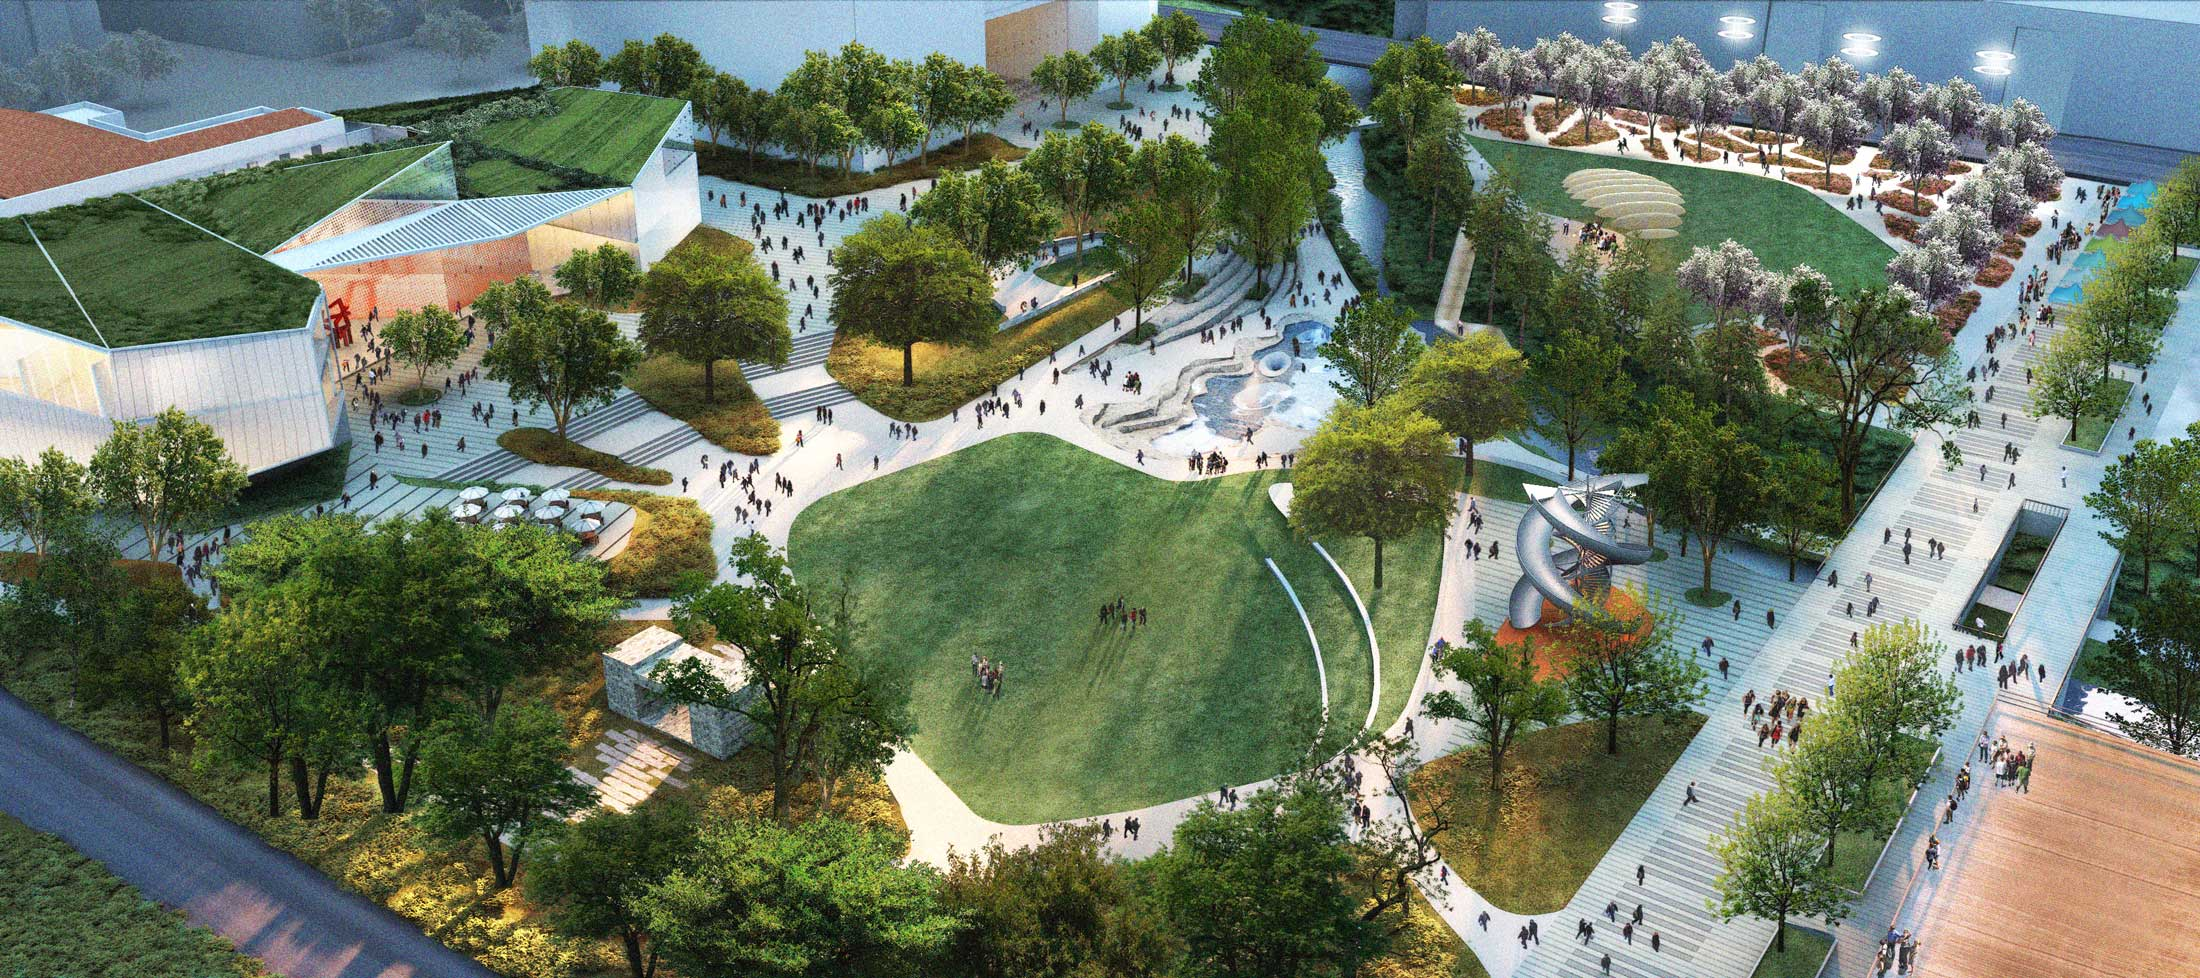 Waller Creek Rendering